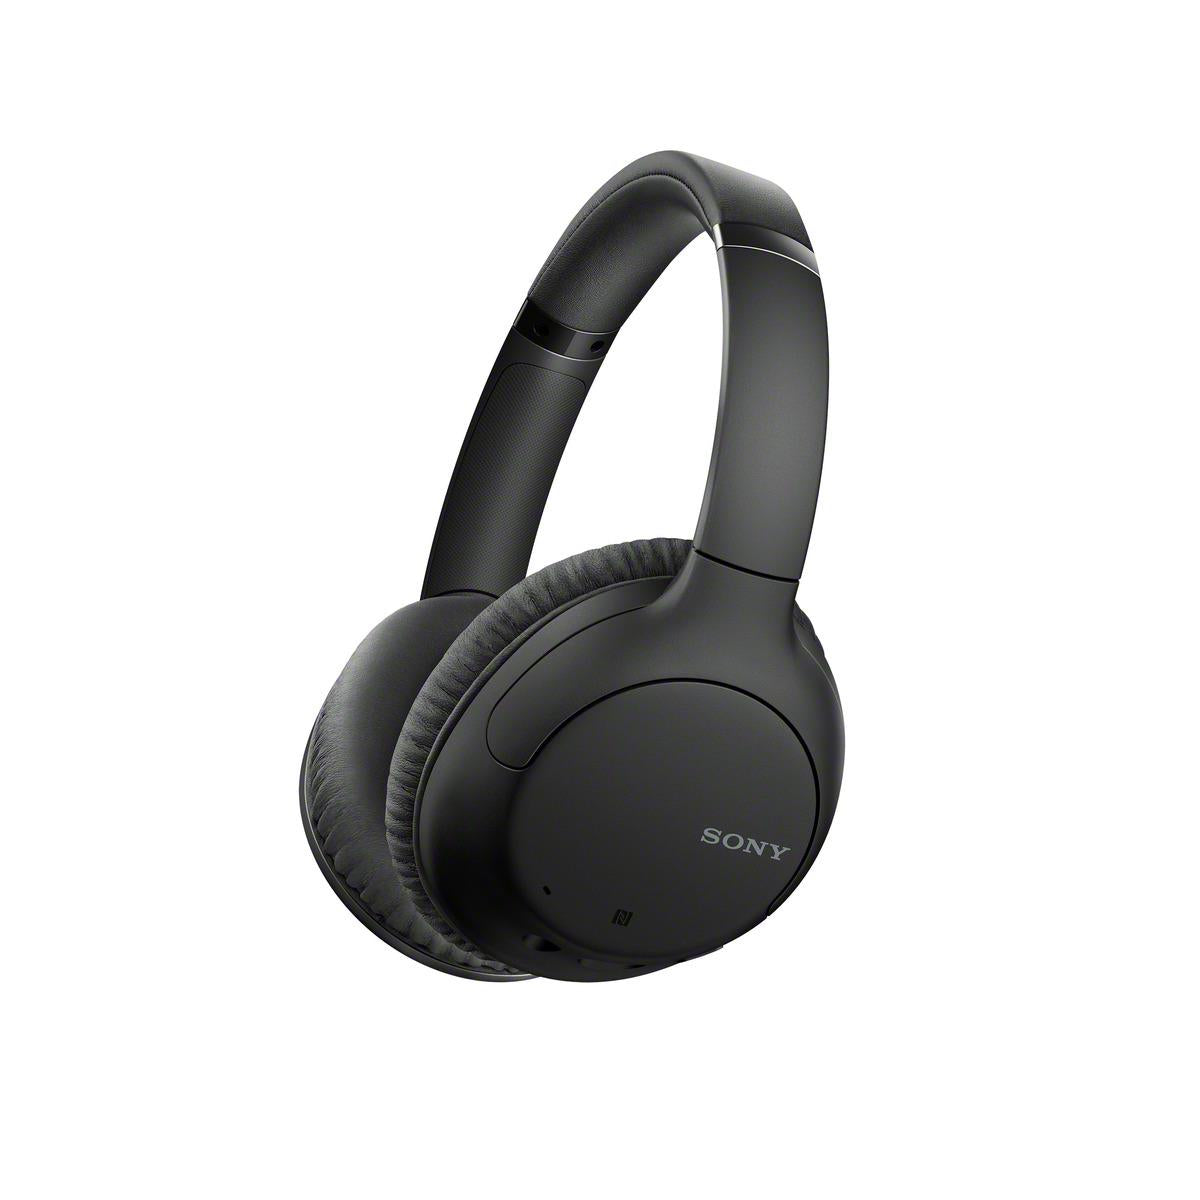 Sony Wireless Noise Cancelling Headphone